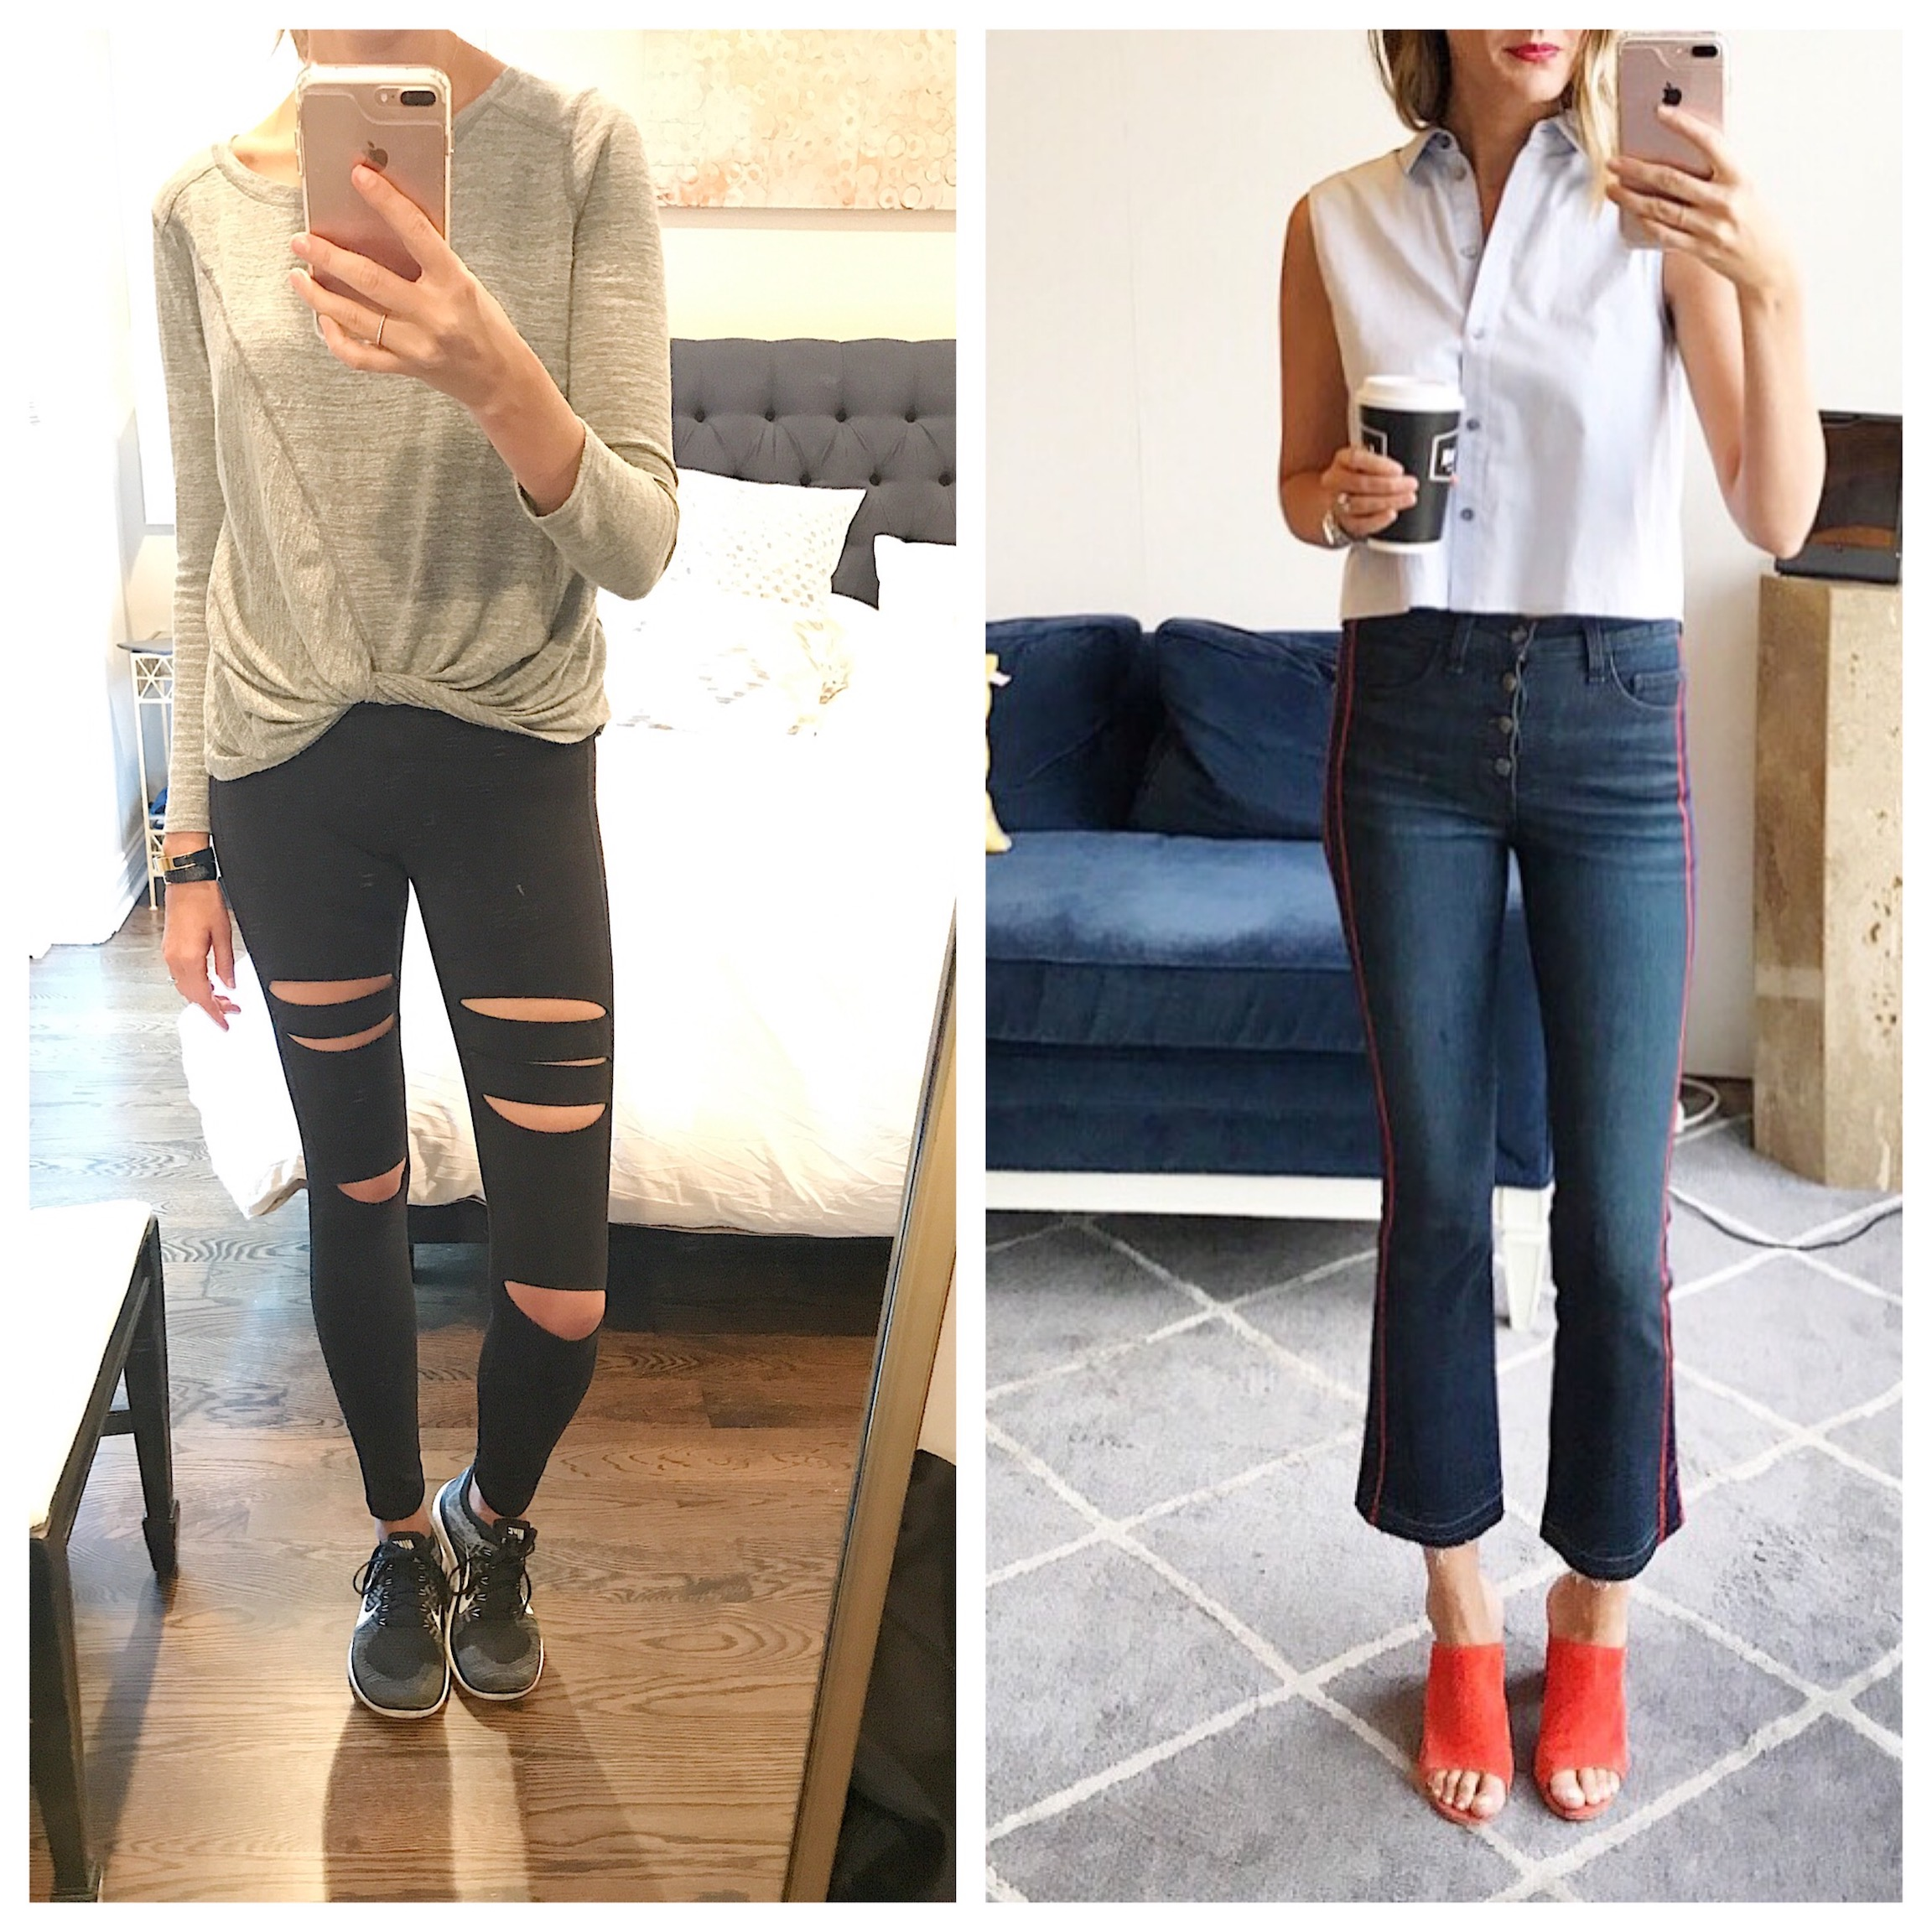 outfit 1: Zella top, Zella pants, Nike shoes outfit 2: T by Wang top, Veronica Beard jeans, M Gemi mules